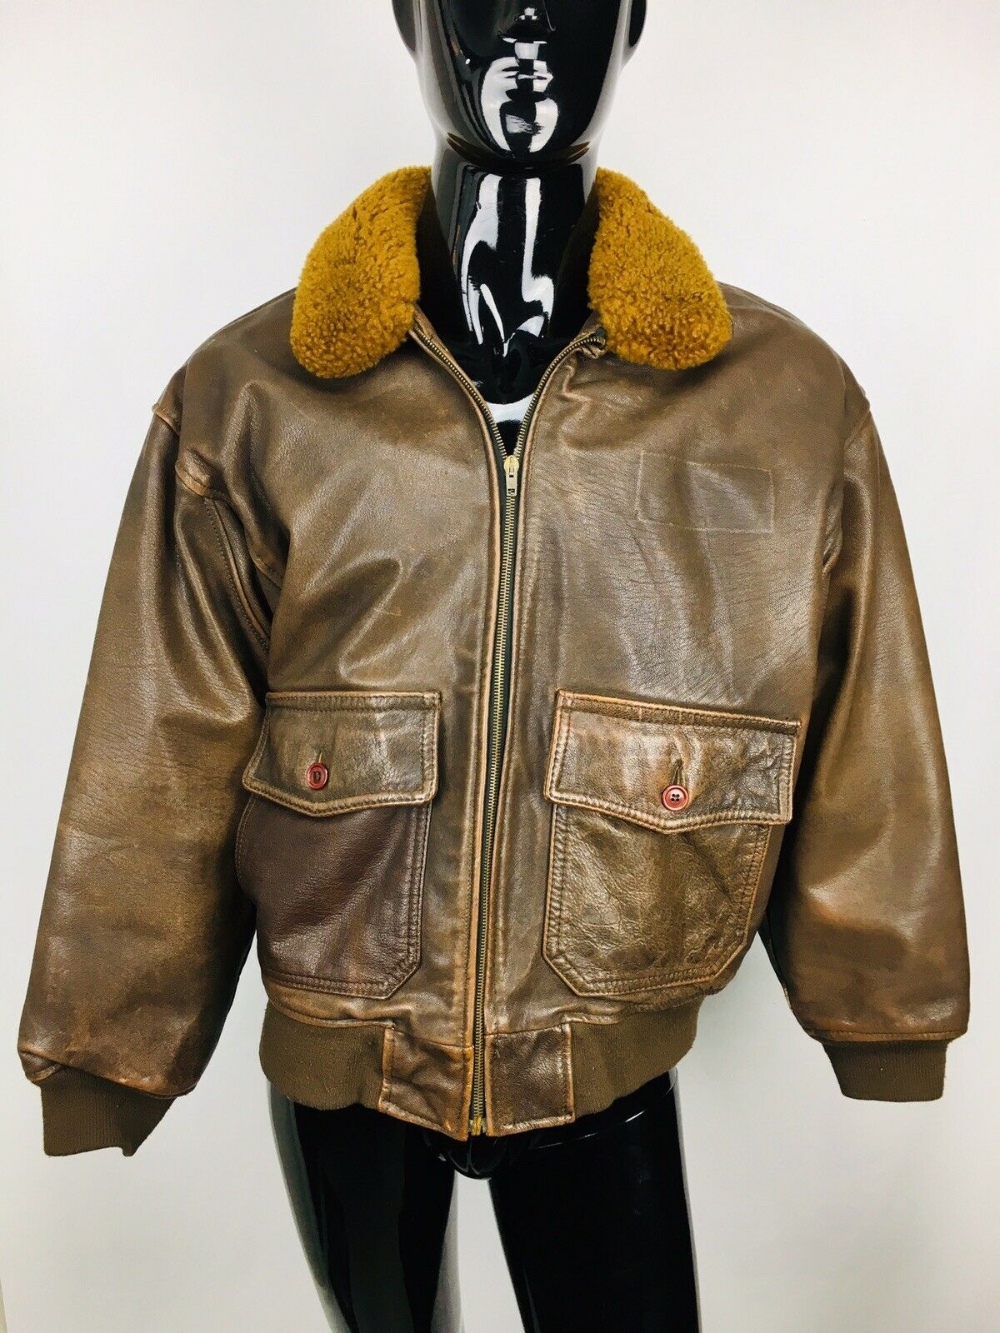 Authentic VTG Avirex Leather Flight Bomber Jacket Type G1